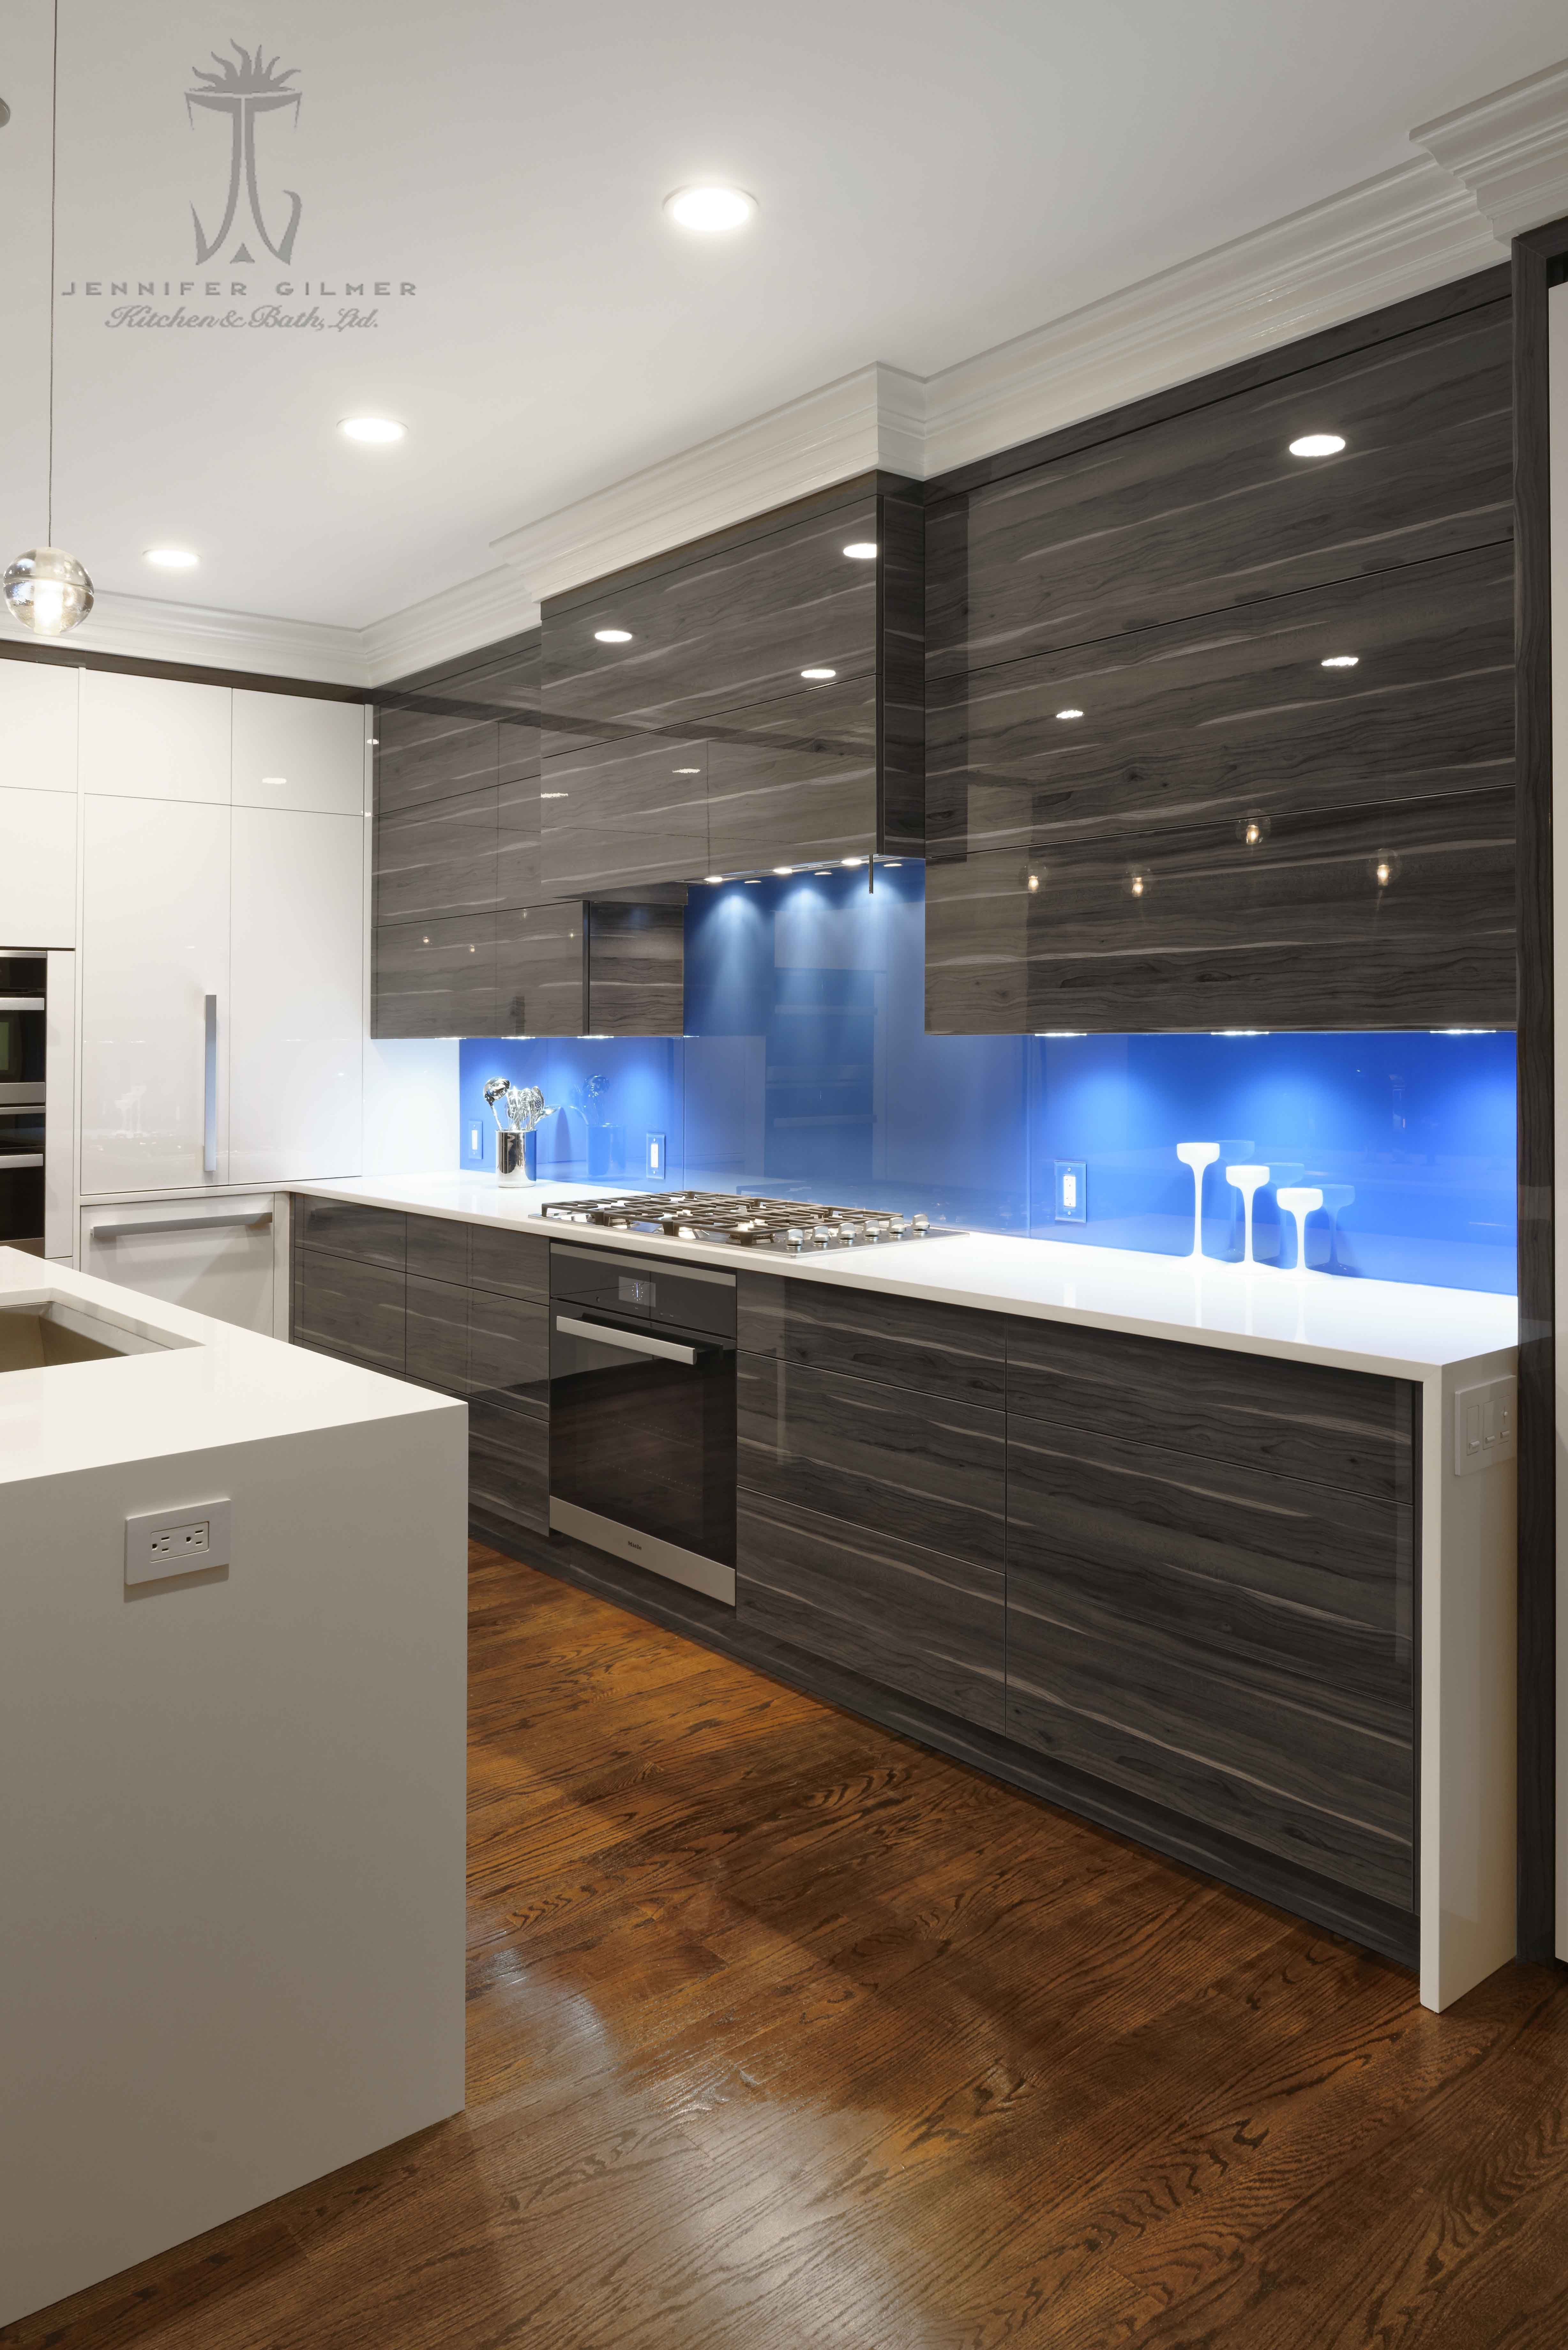 Kitchen in Bethesda Maryland designed by